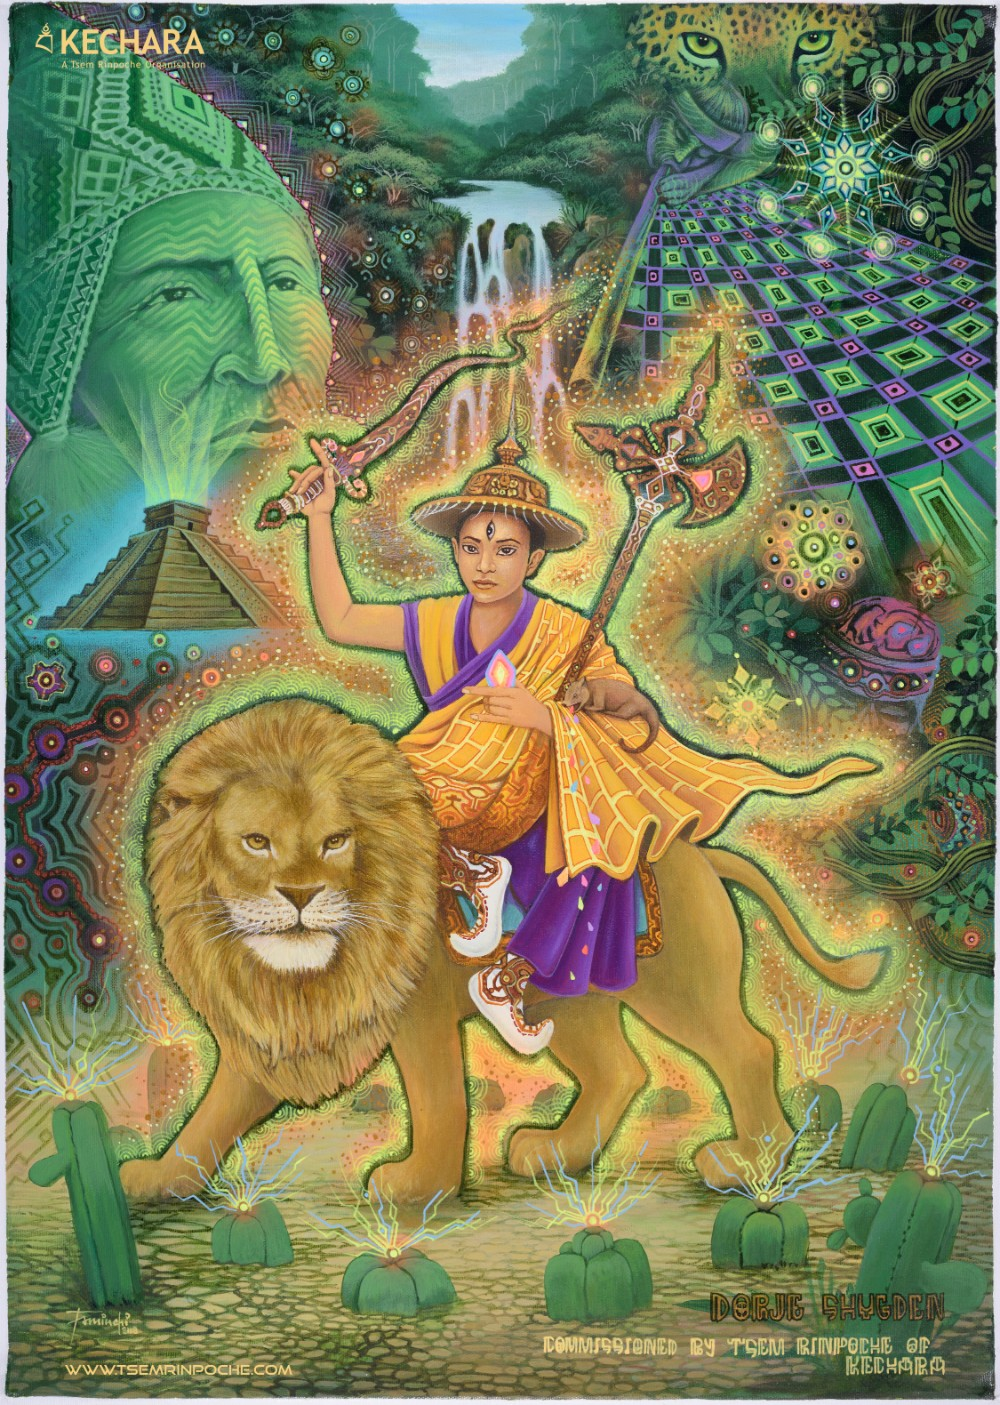 A unique Mayan painting of Dorje Shugden commissioned by Tsem Rinpoche. Click on image to enlarge.